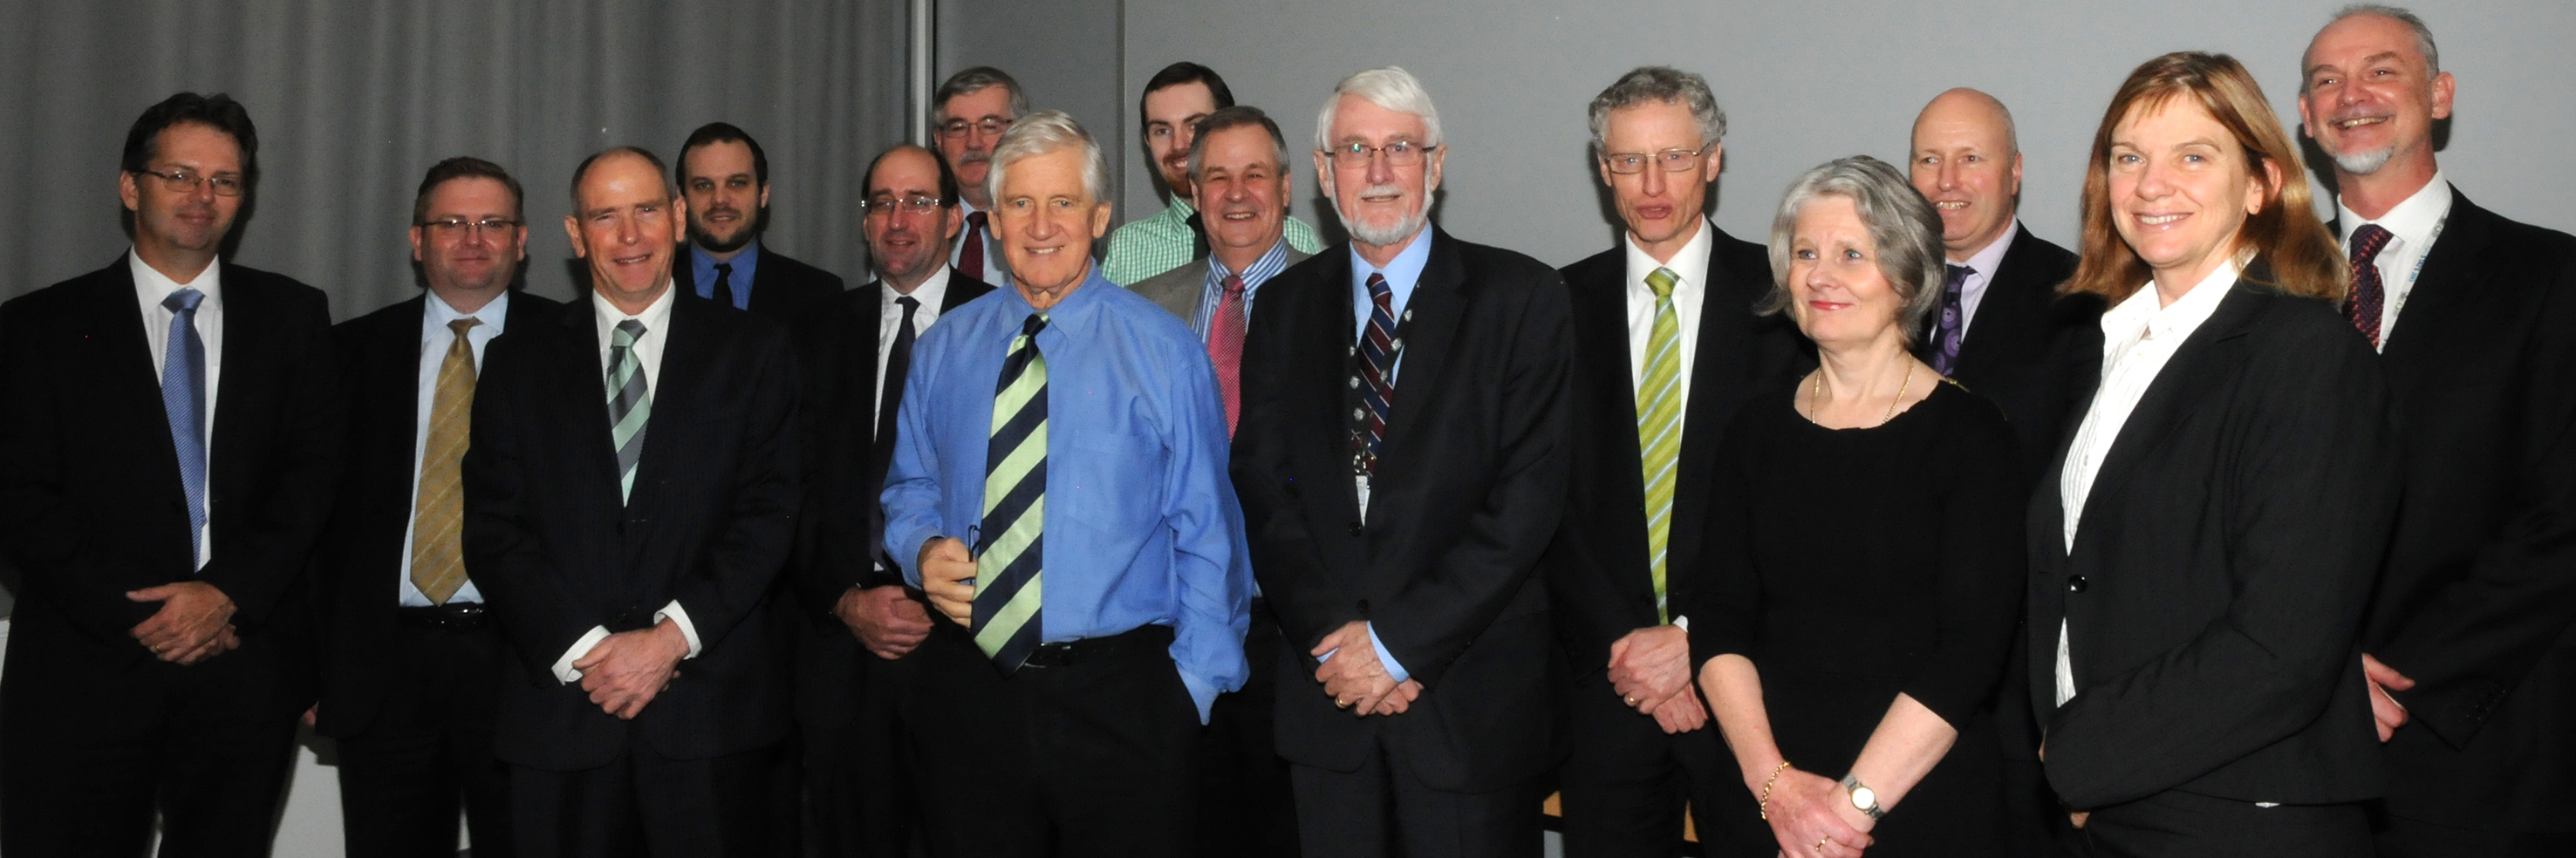 The Australian Statistics Advisory Council meeting in Canberra on 18 June 2013